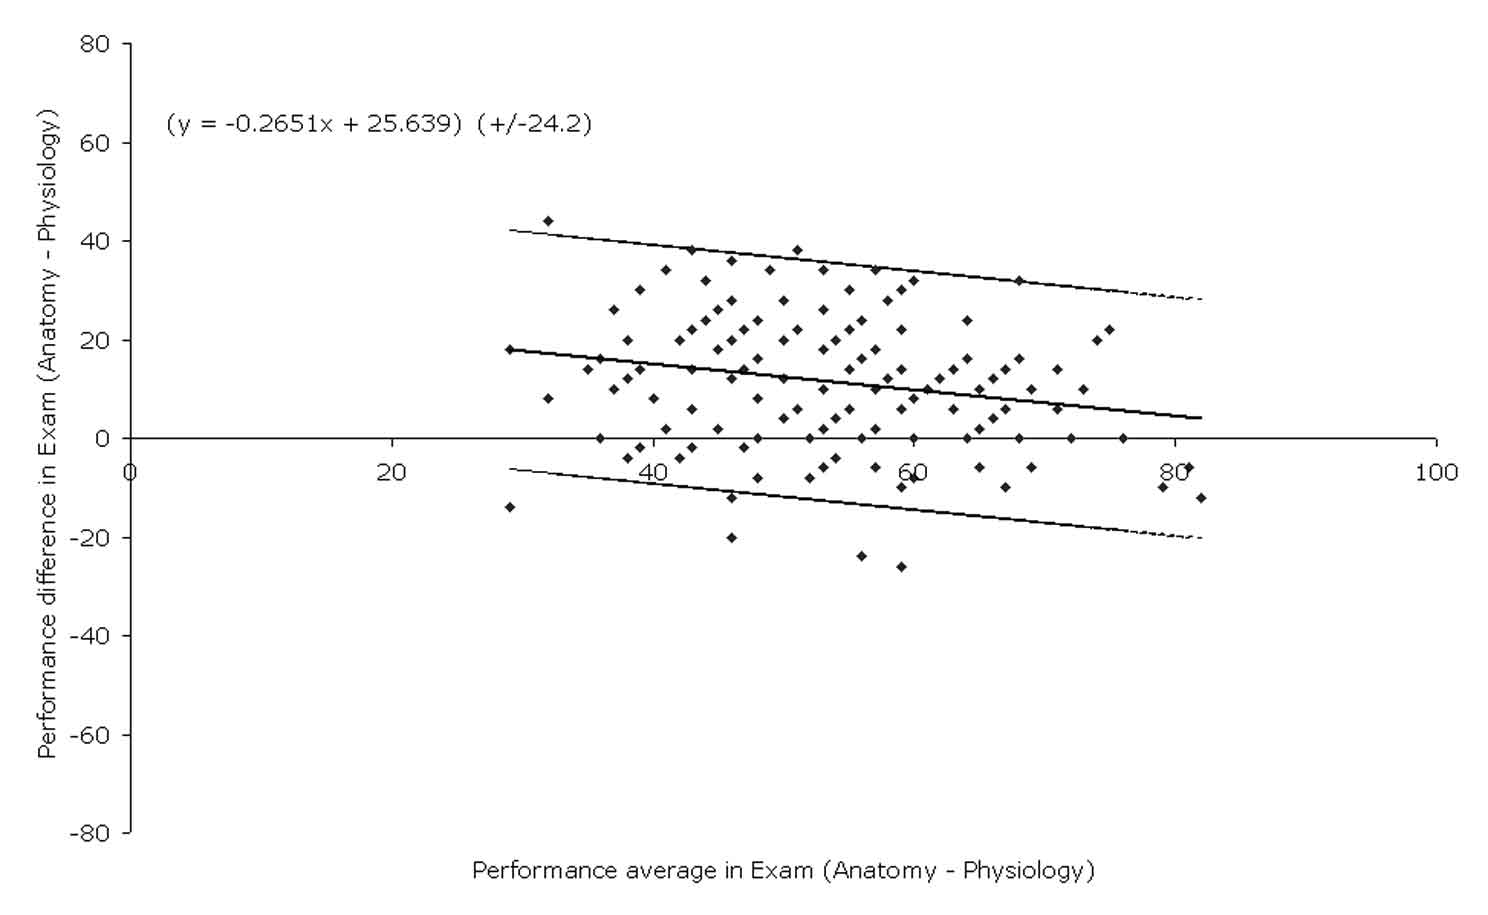 James & Fleming Figure 4: Agreement in student performance in an examination in Anatomy and Physiology modules Examination Agreement between the student performance in the Anatomy and Physiology